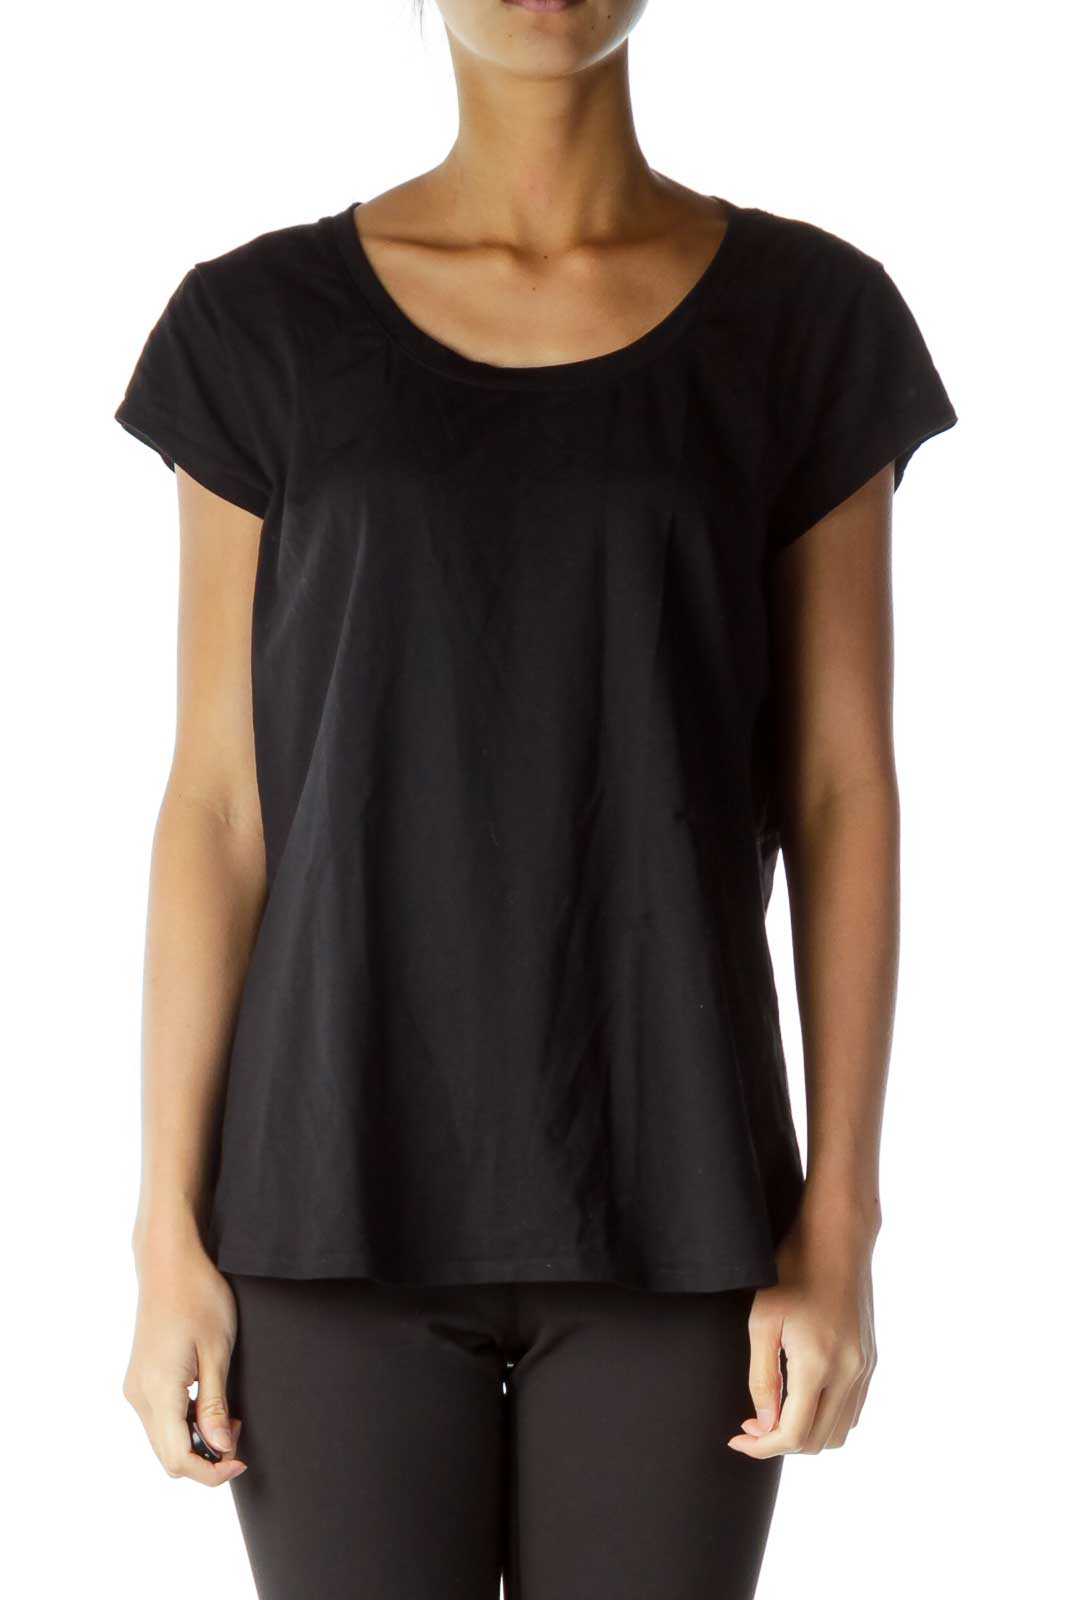 Black See-through Cut Out Sports Top Front